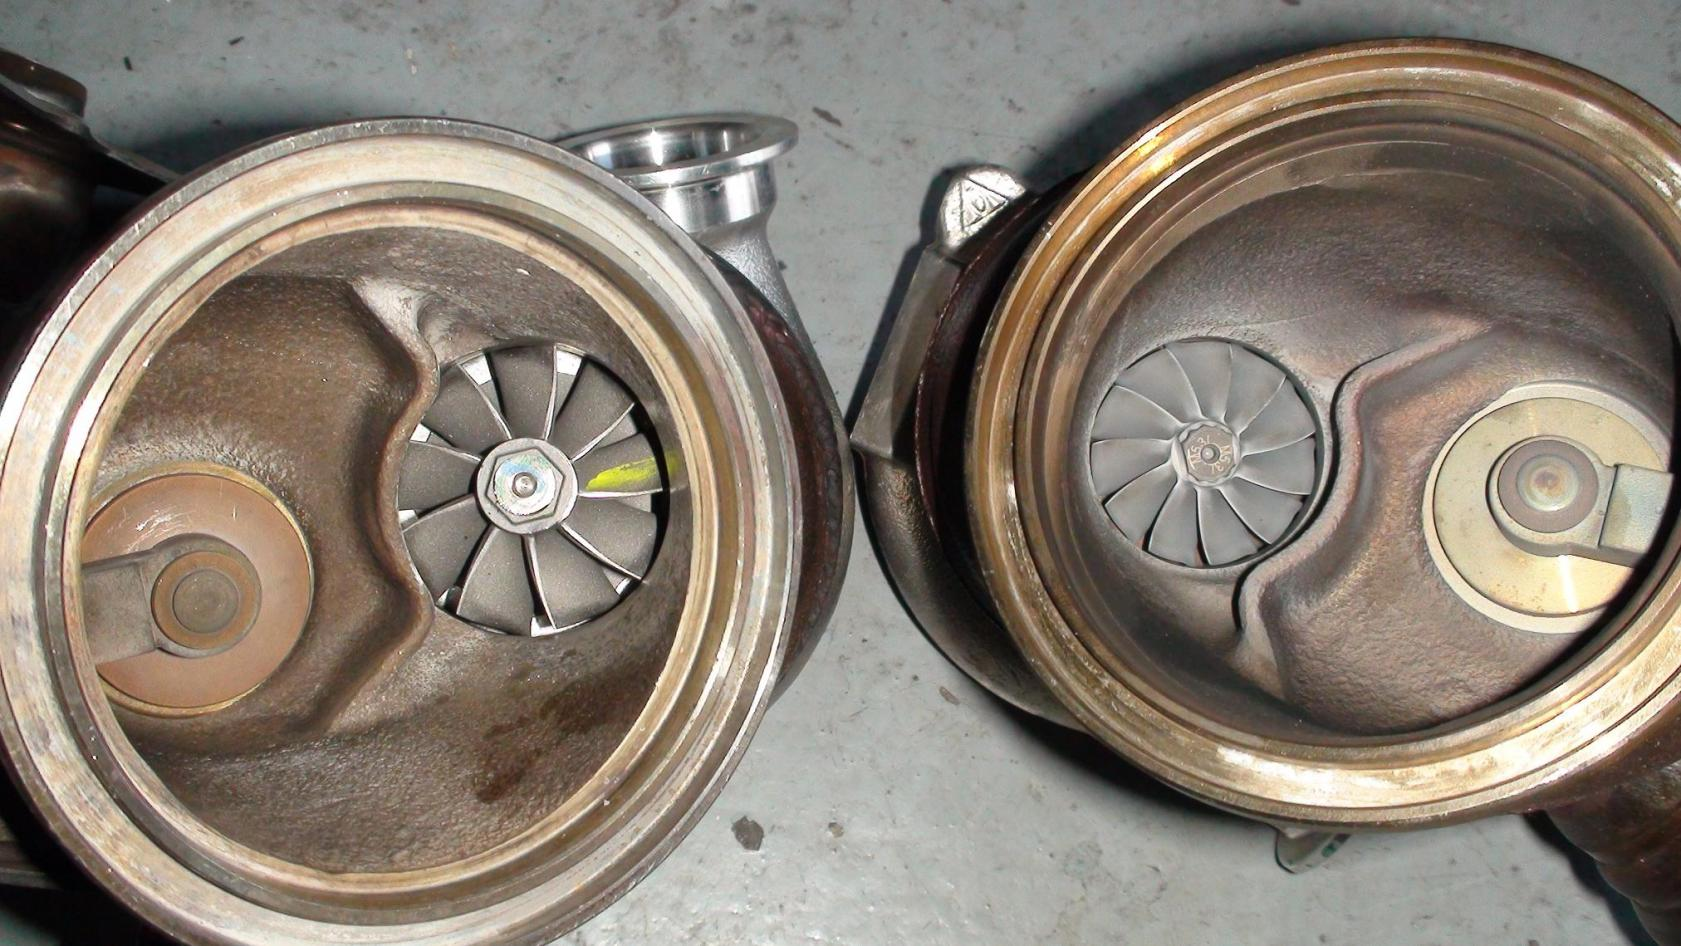 ASR Engineering 335135 Twin Ballbearing Turbo Upgrades Completed